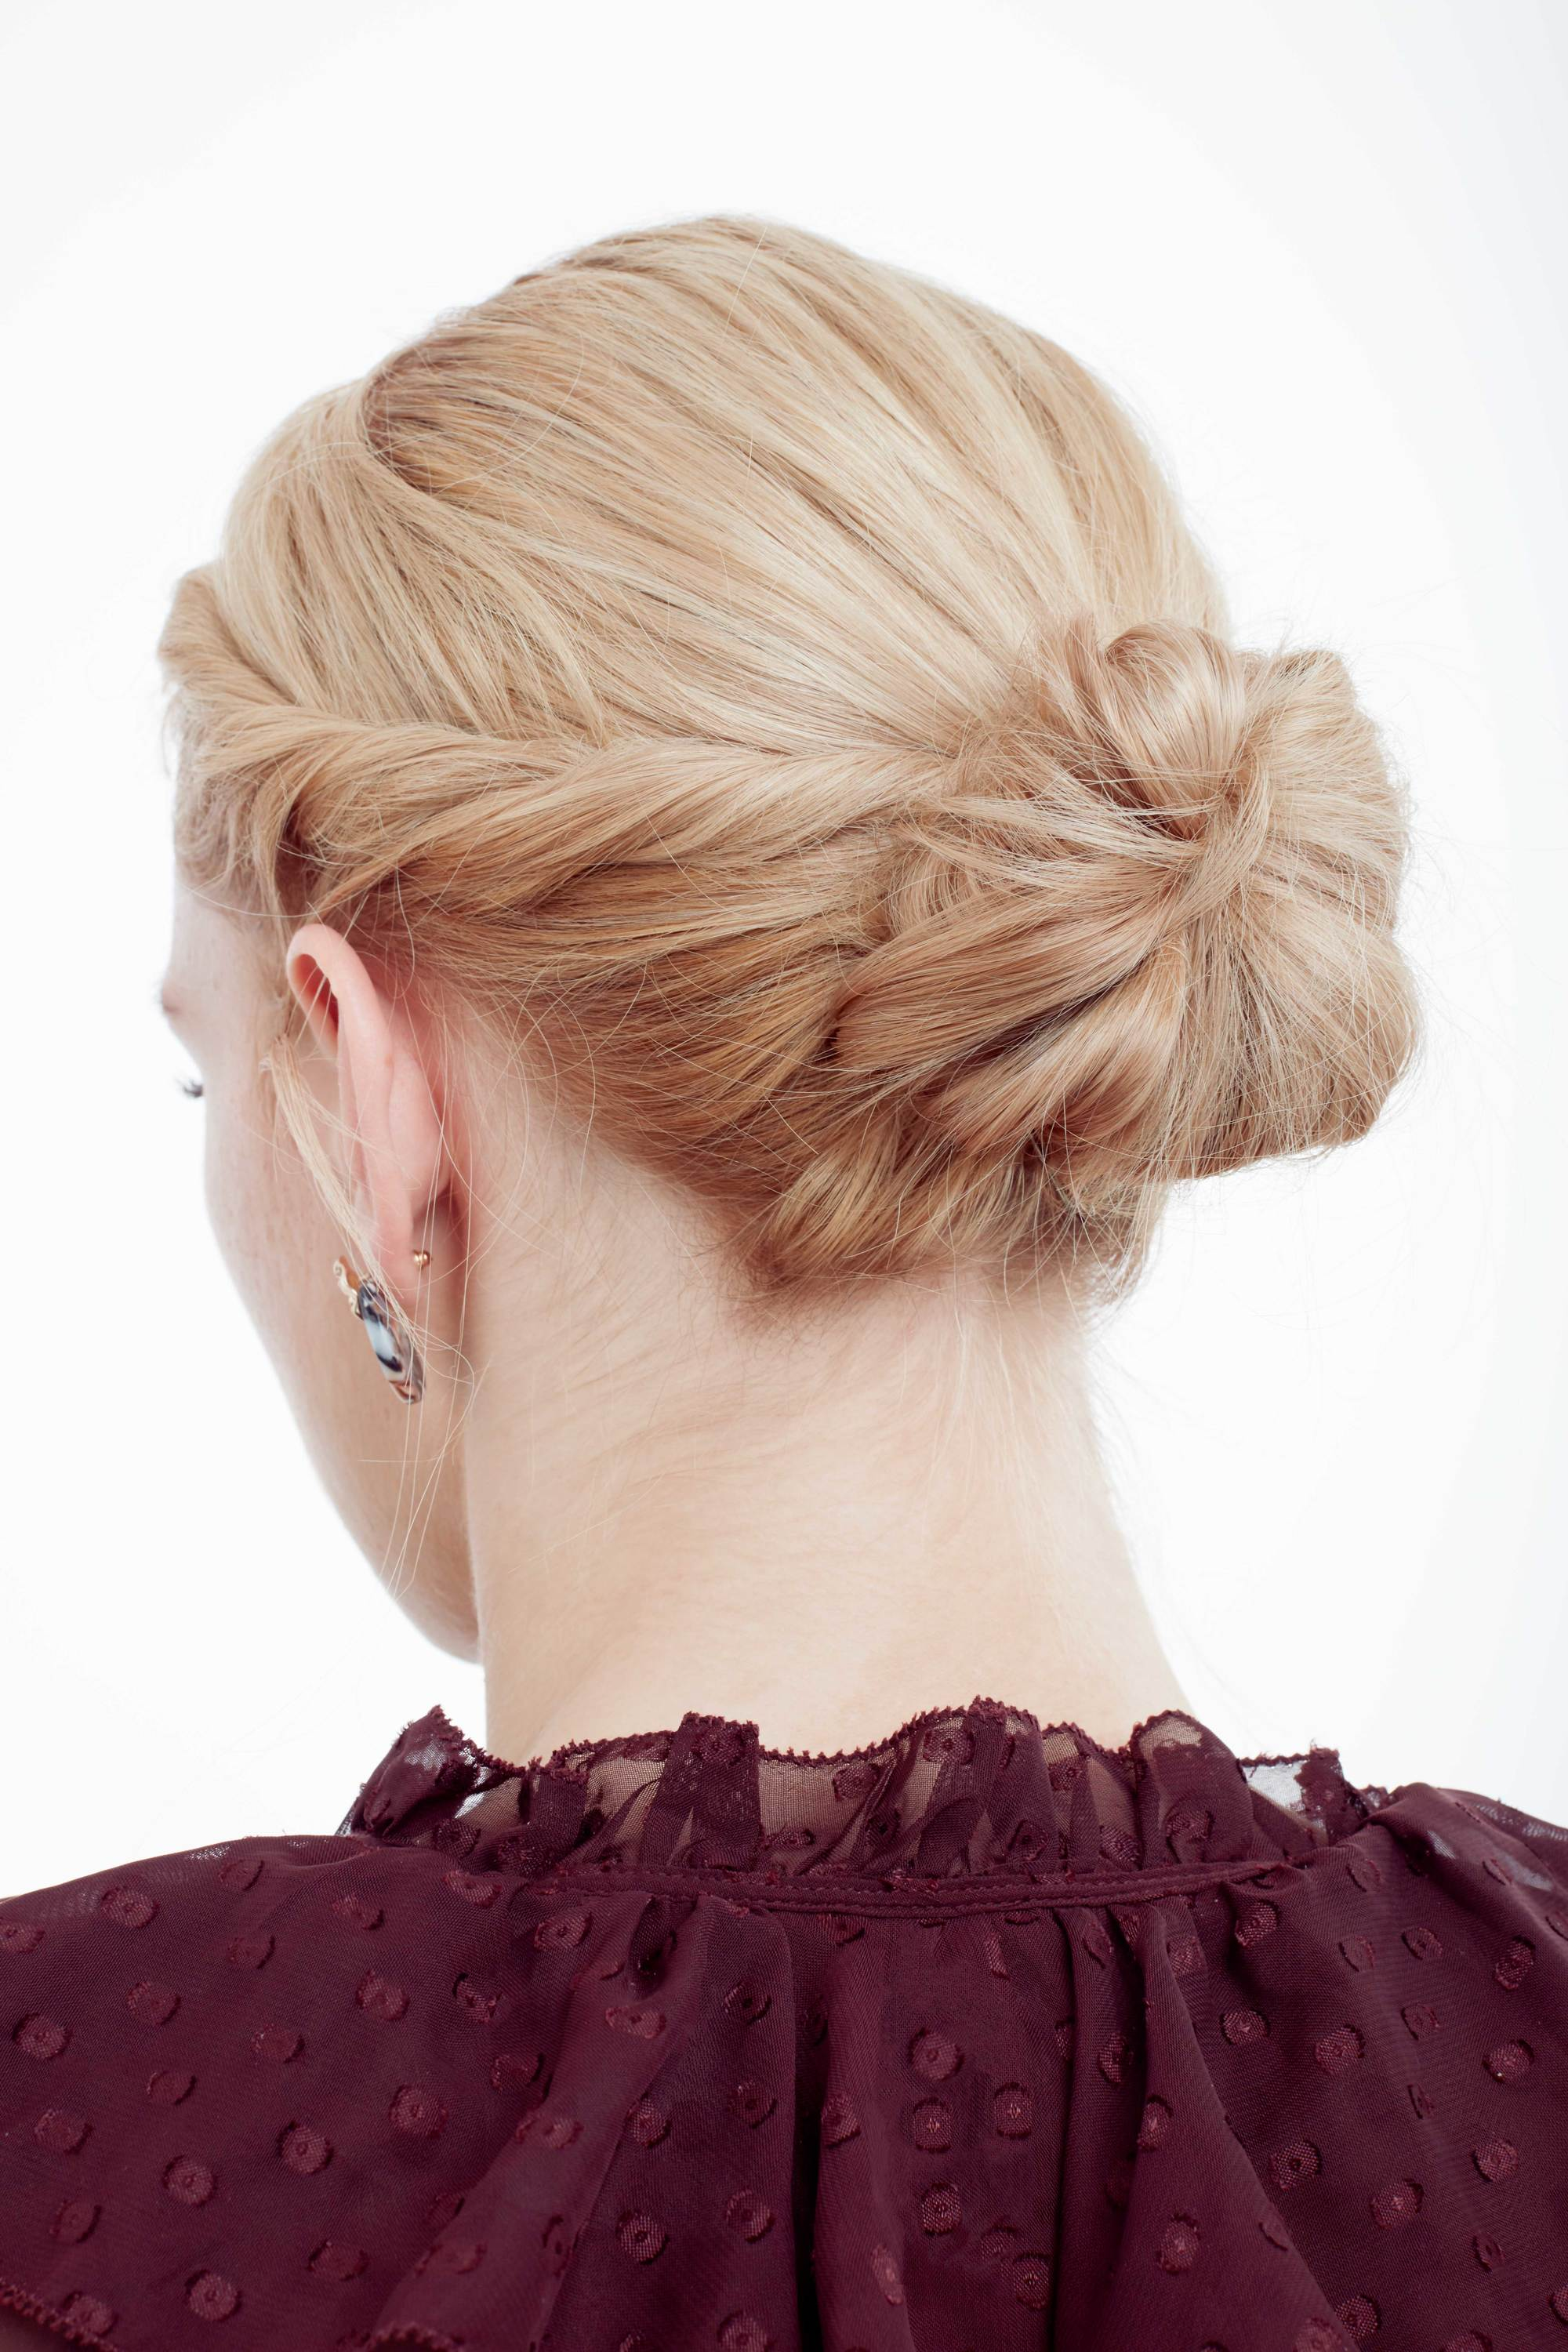 Wedding guest hair: Rear shot of model with golden blonde hair styled into a low twisted bun, wearing a ruffled purple top in the All Things Hair UK studio